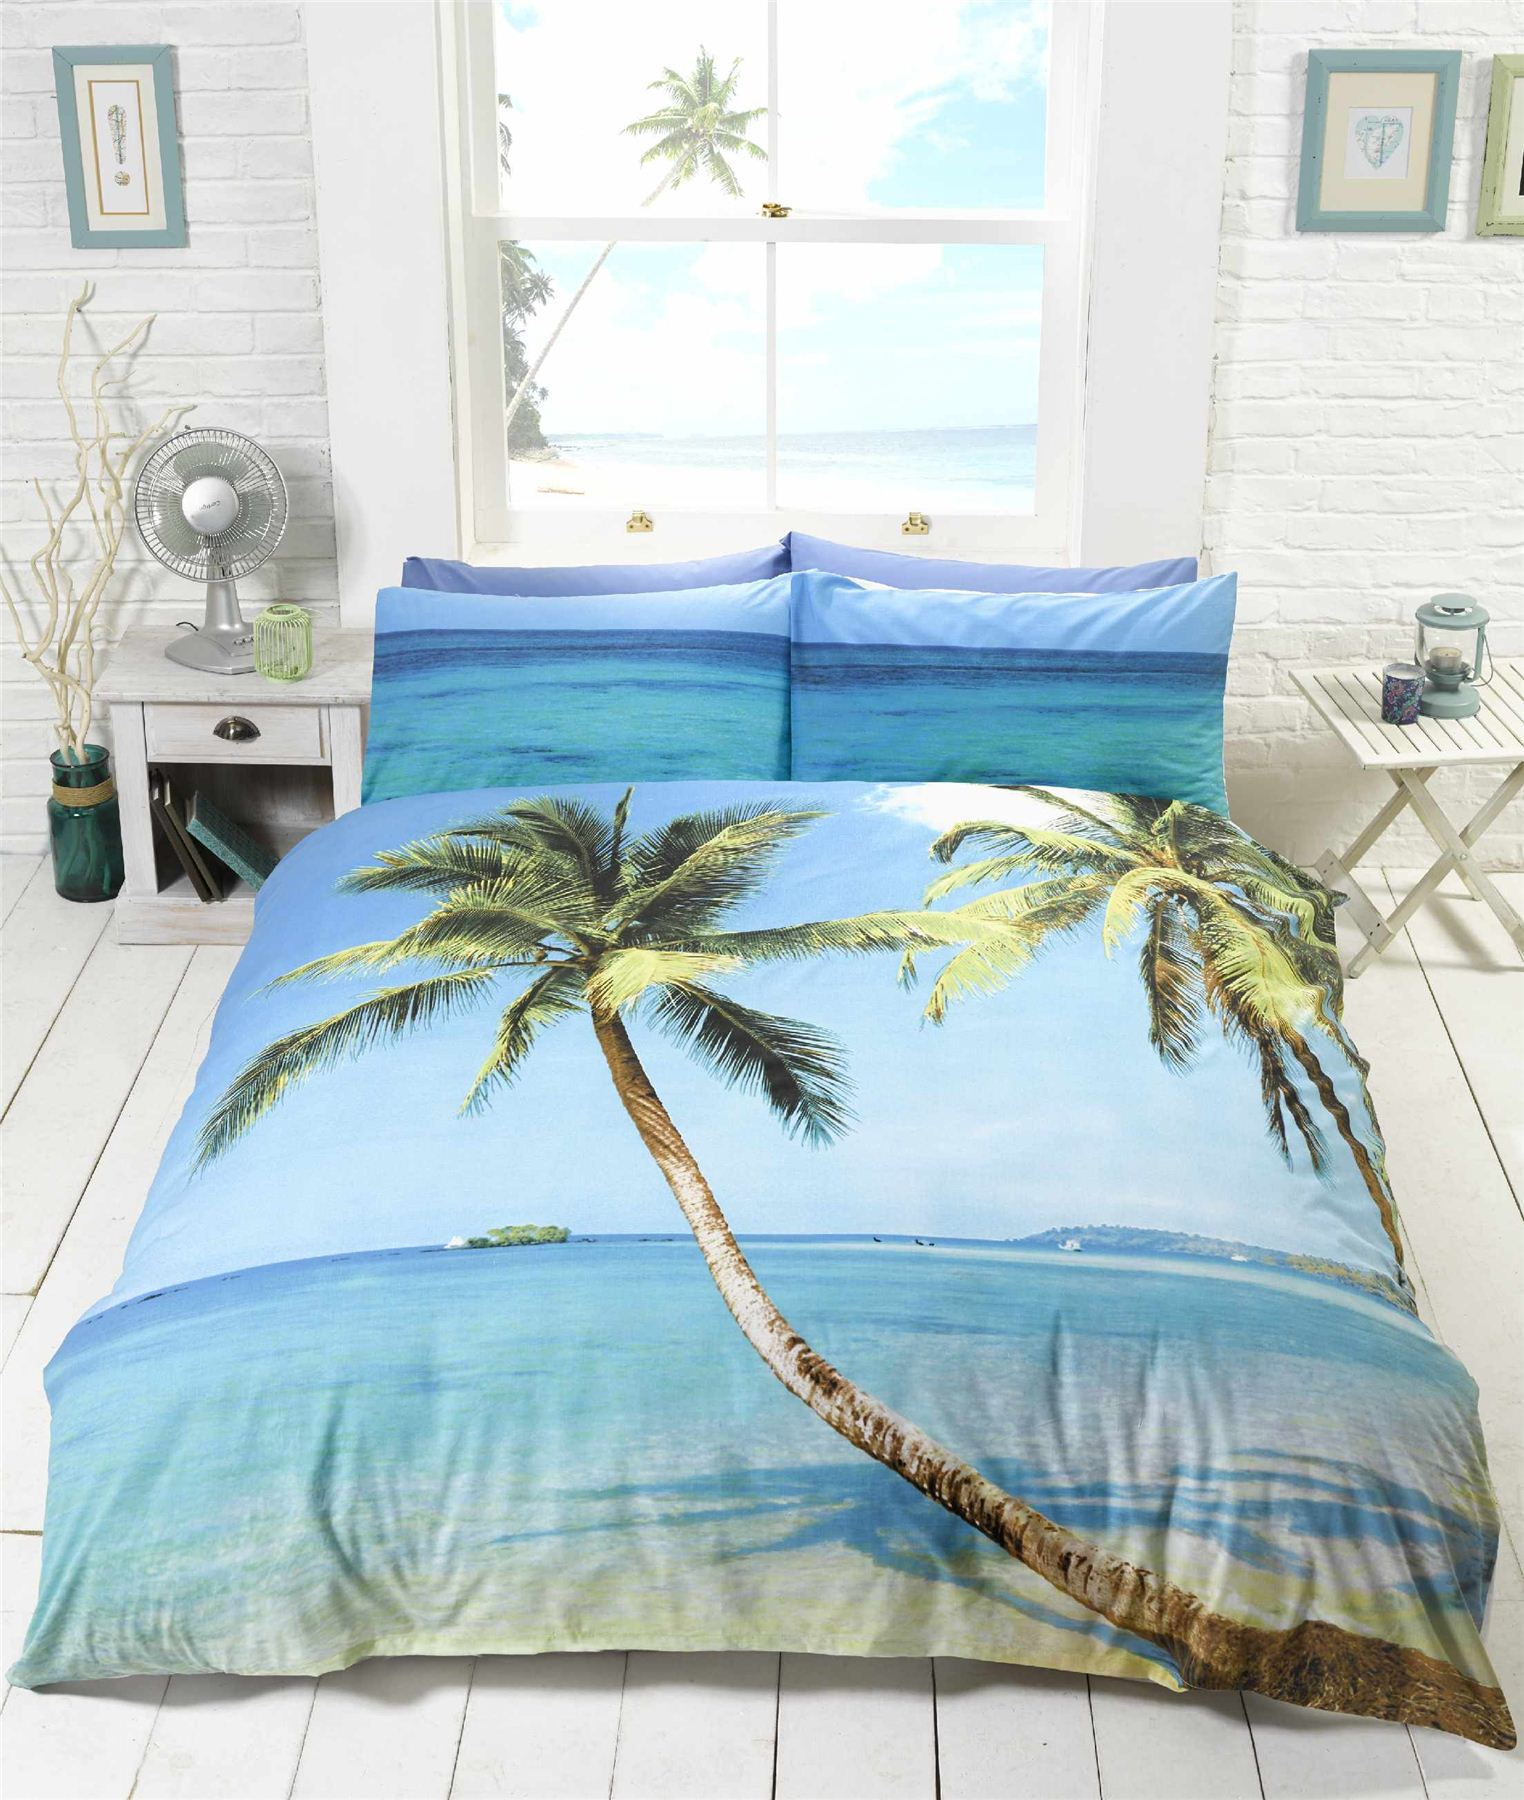 beach scene tropical island palm tree bedding duvet cover